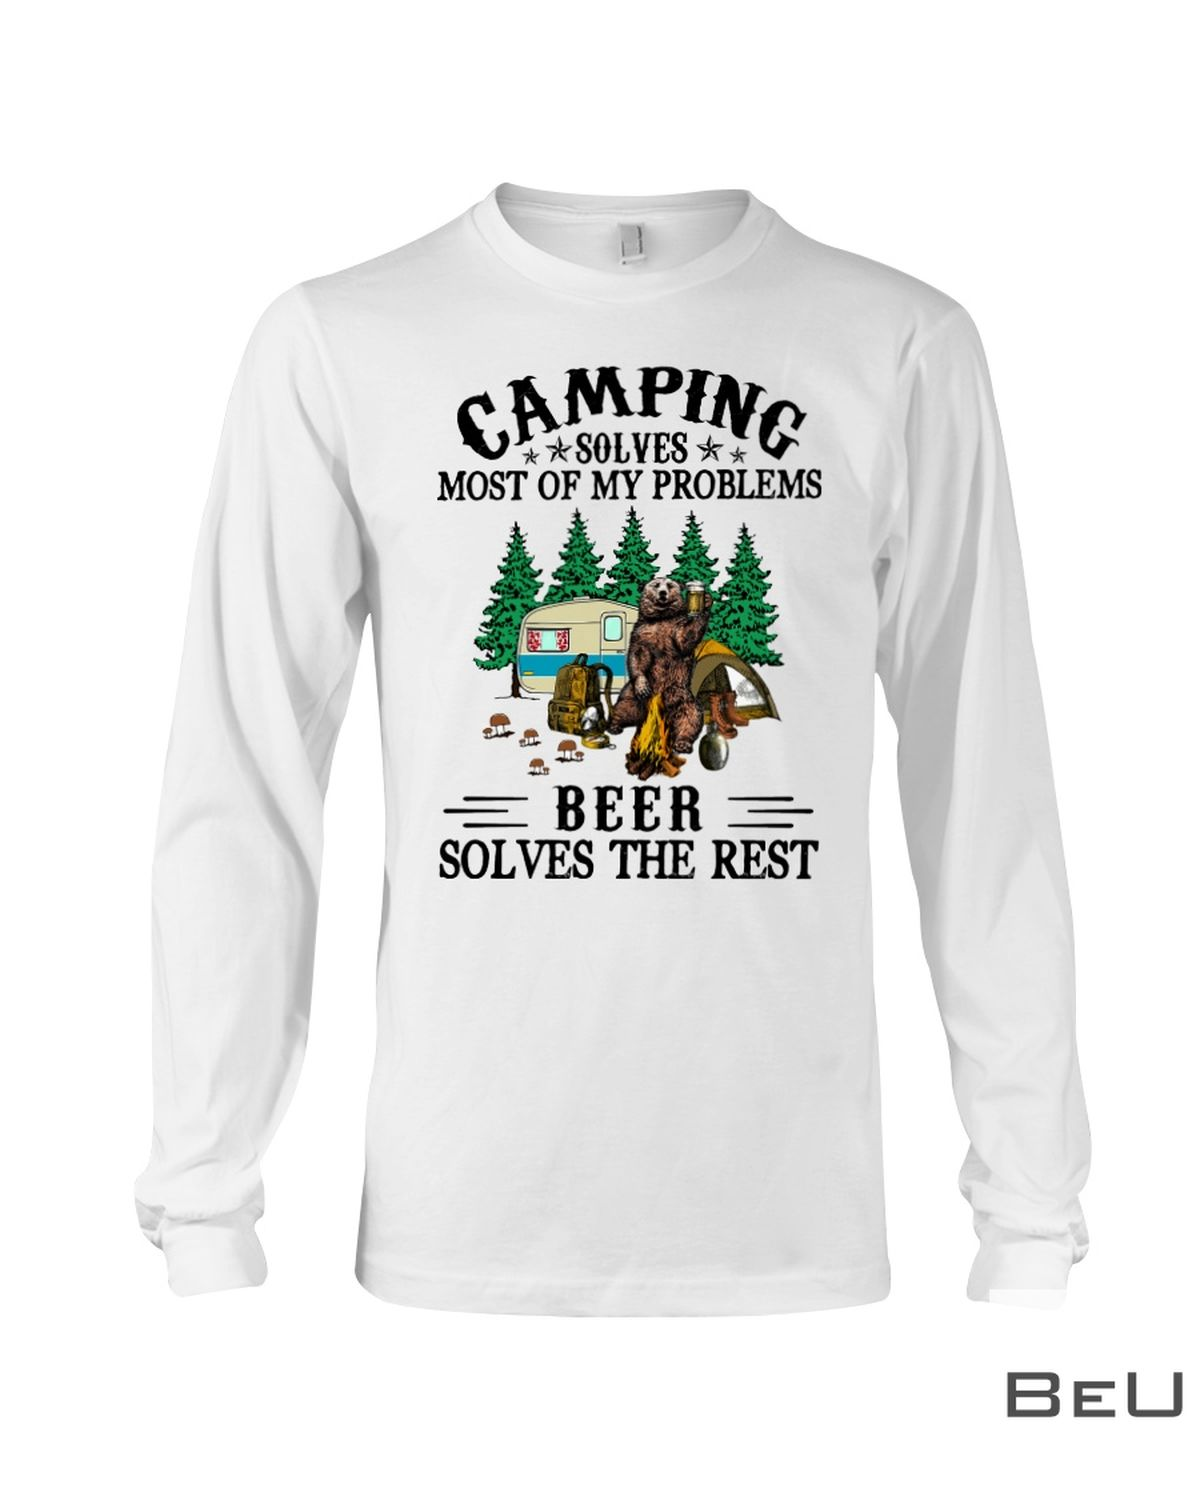 Camping Solves Most Of My Problems Beer Solves The Rest Shirtx